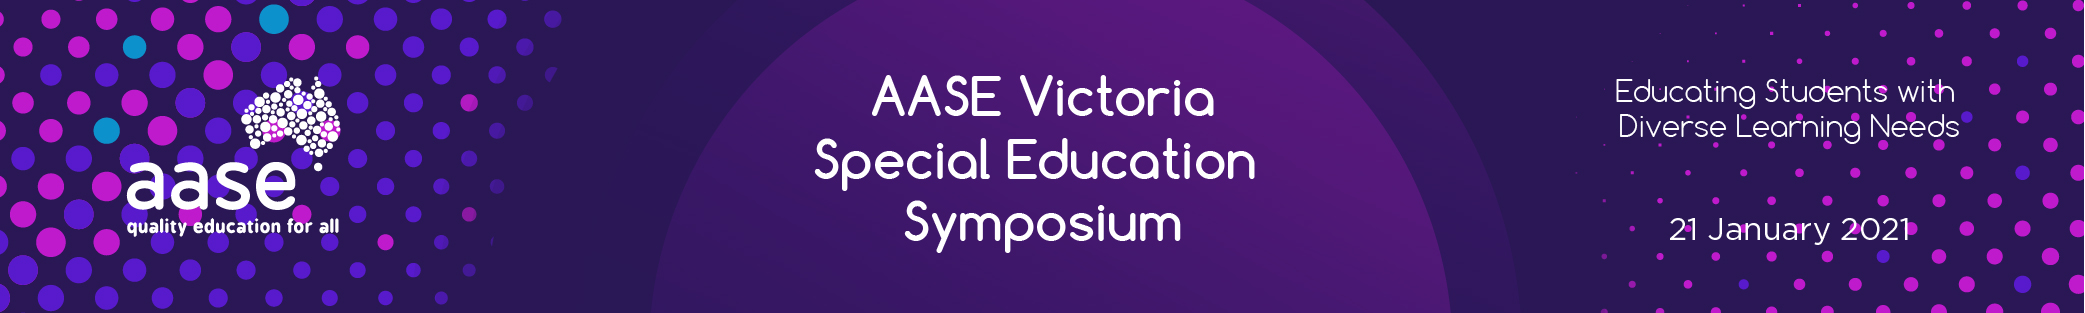 AASE Victoria Special Education Symposium 2021 - Web Banner_virtual-1000x150px